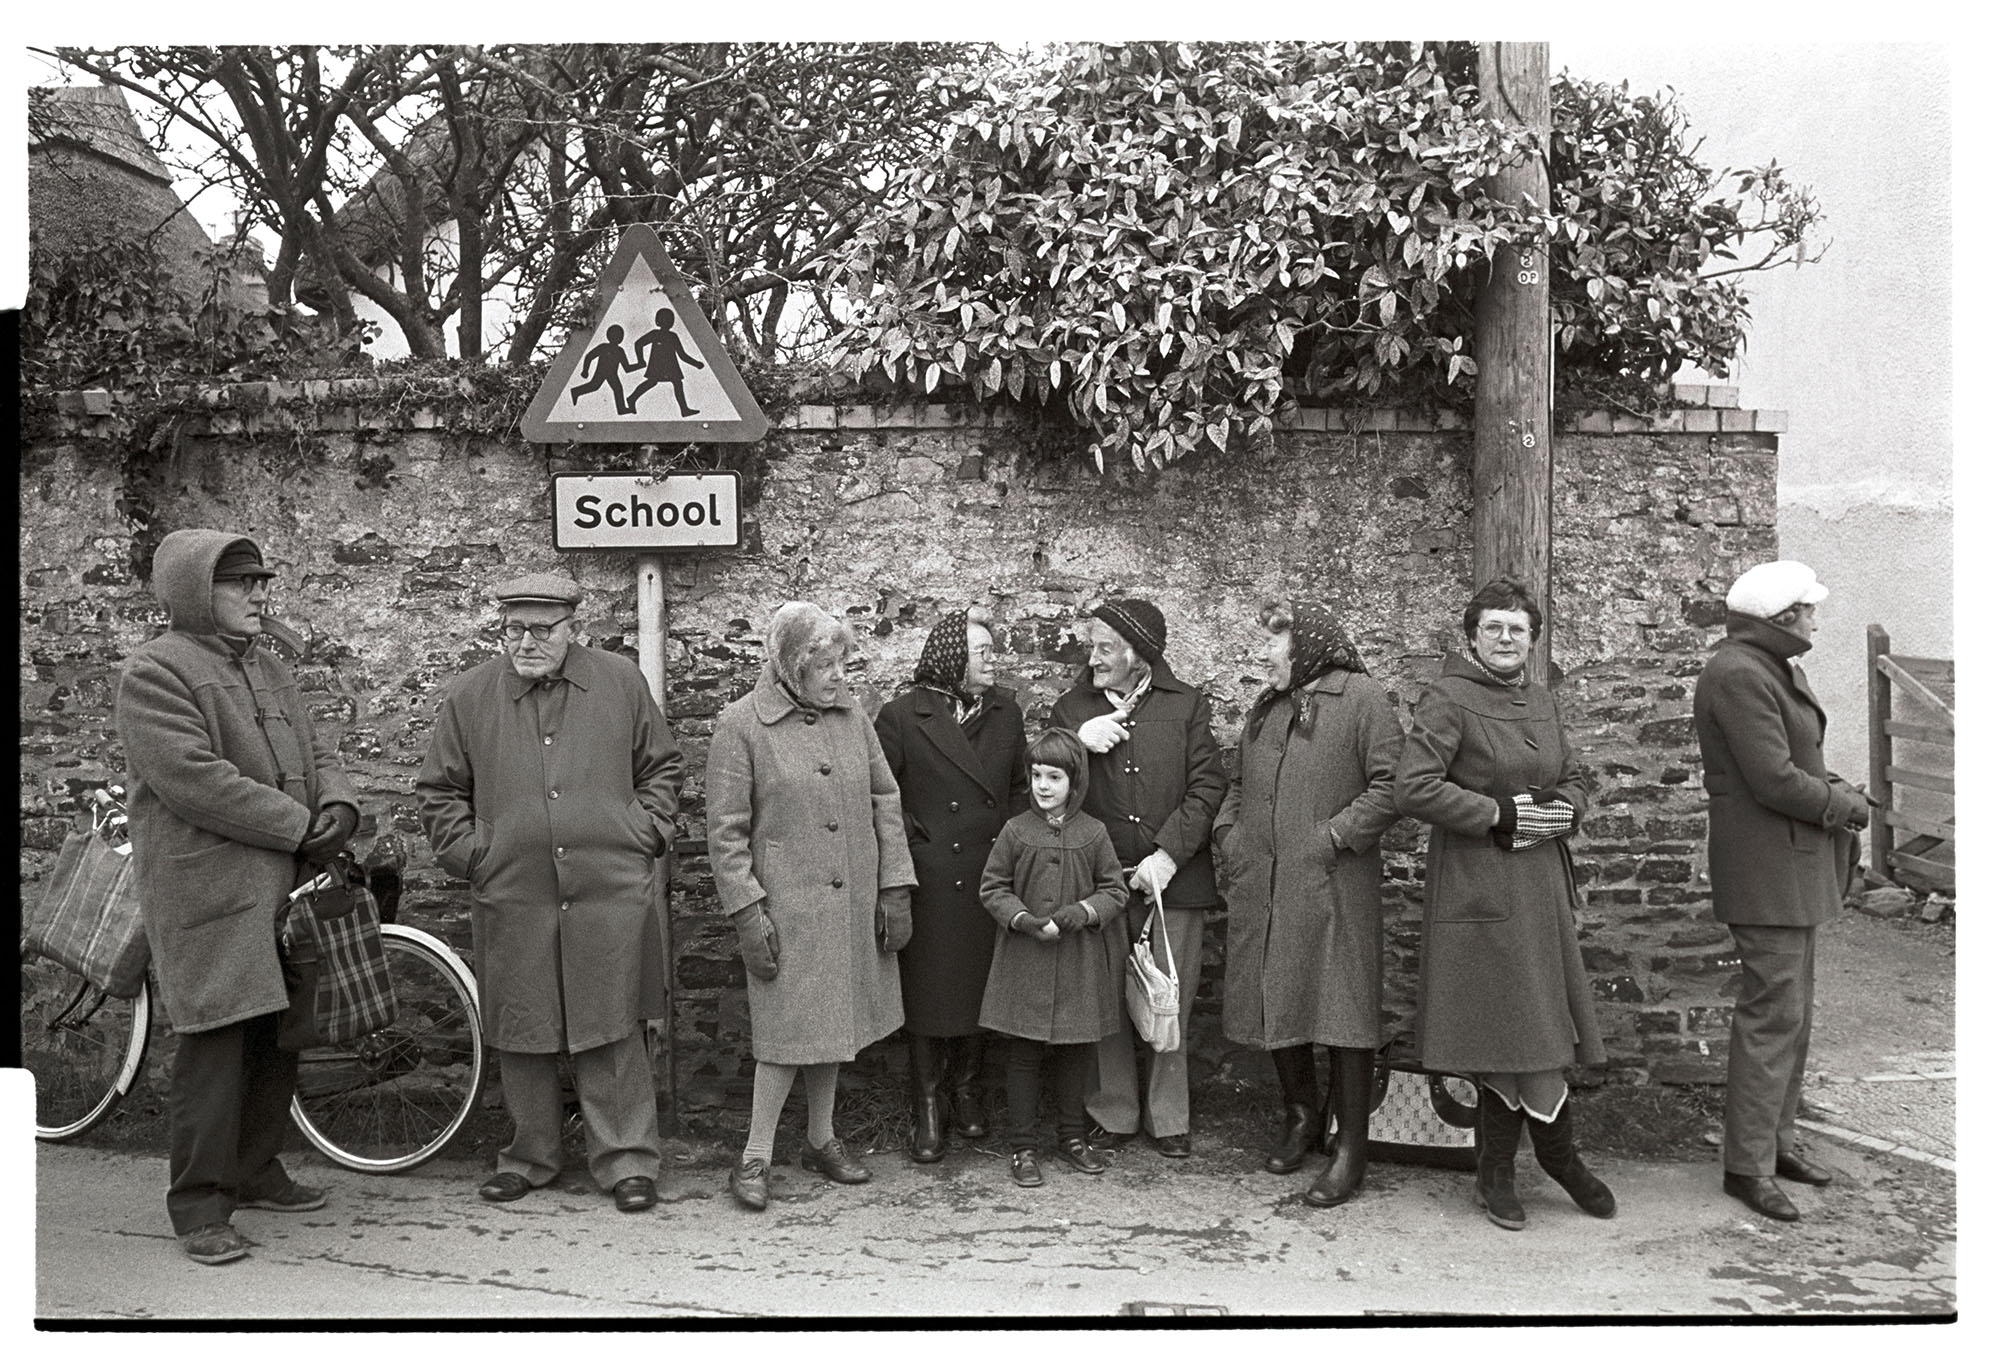 Pancake race in village street spectators standing against wall at finish.<br /> [A group of people and a child, Ella Ravilious, standing against a wall in Fore Street, Dolton, on Shrove Tuesday, waiting for the finish of the village pancake race. They are wearing coats against the cold and one man is stood by a bicycle.]